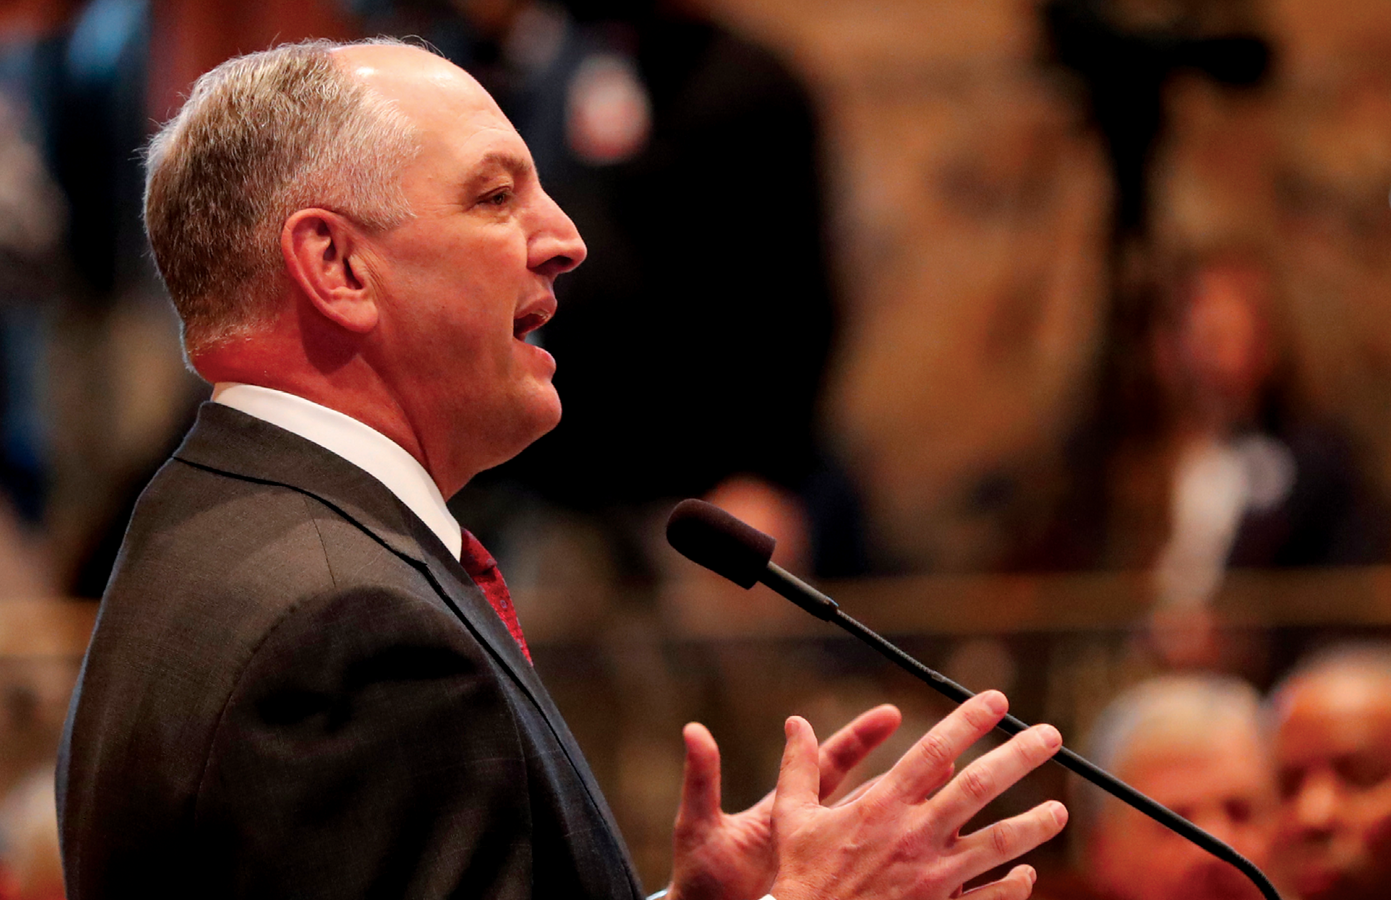 Governor John Bel Edwards speaks at the opening session of the Louisiana Legislature in Baton Rouge on March 12. (AP Photo/Gerald Herbert, Pool)